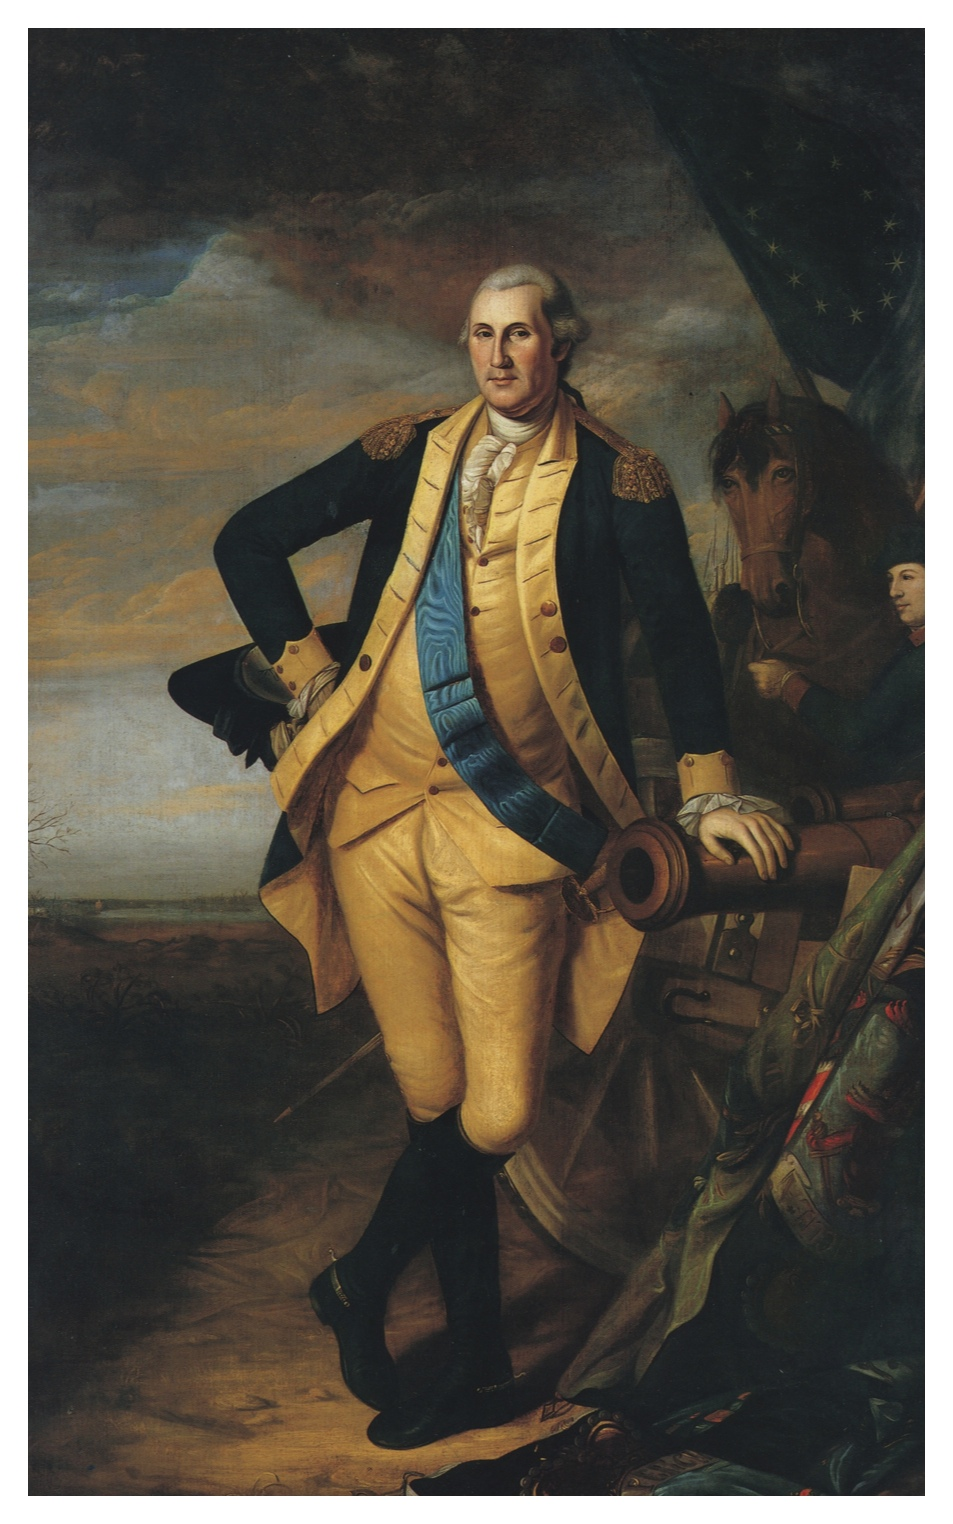 george washington better general or president essay George washington was a good president for his time, we needed a good commander to help win the war but all around i think abe was a better president but they were both needed for their time fil.